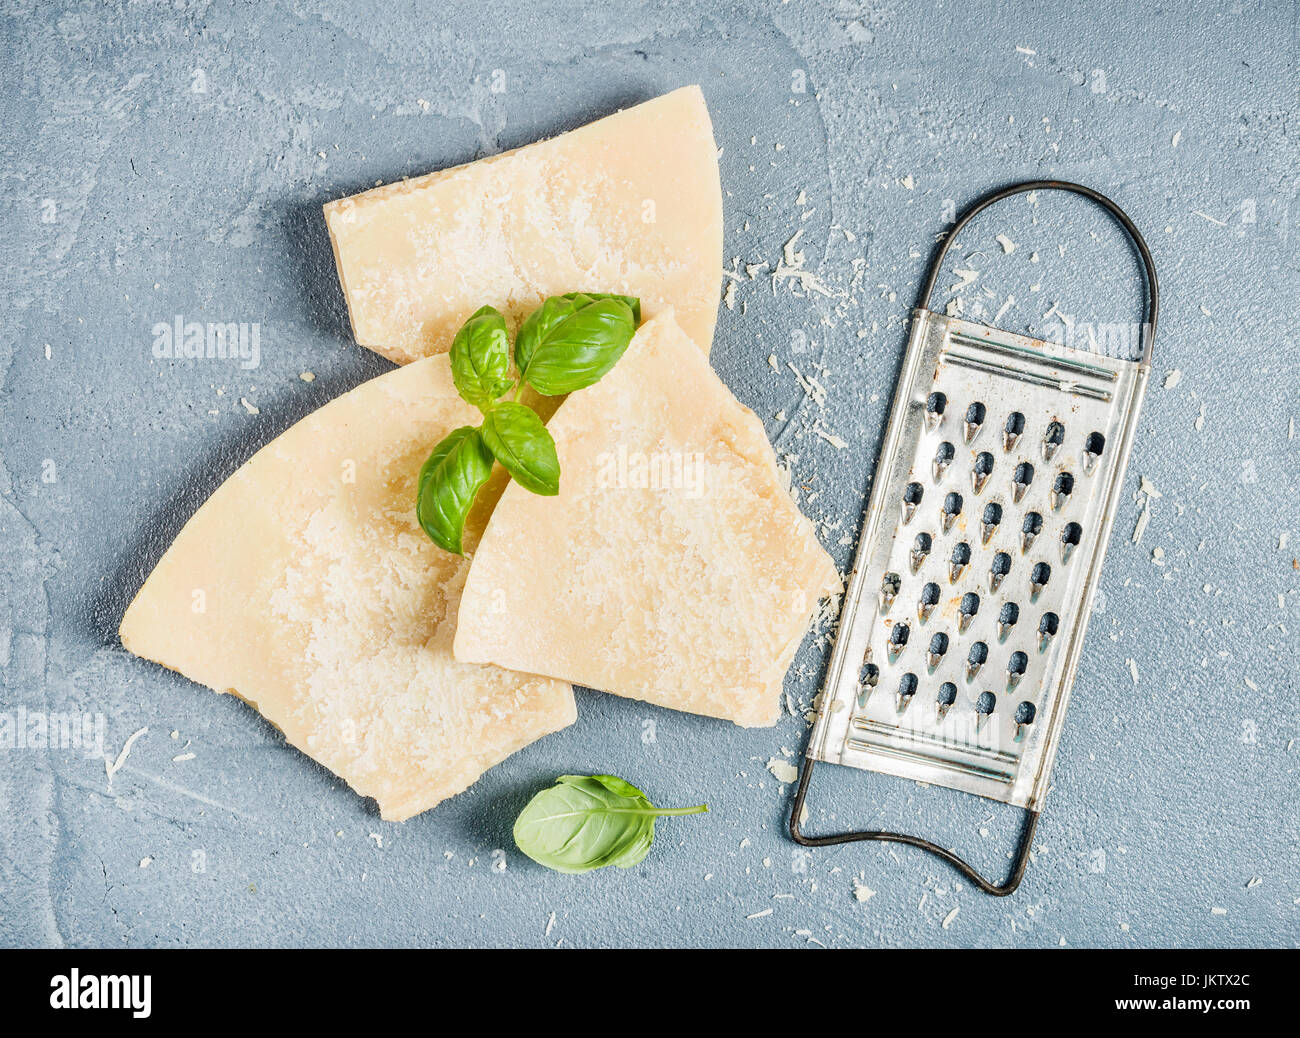 Cuts of Parmesan cheese with metal grater and fresh basil over concrete textured background - Stock Image